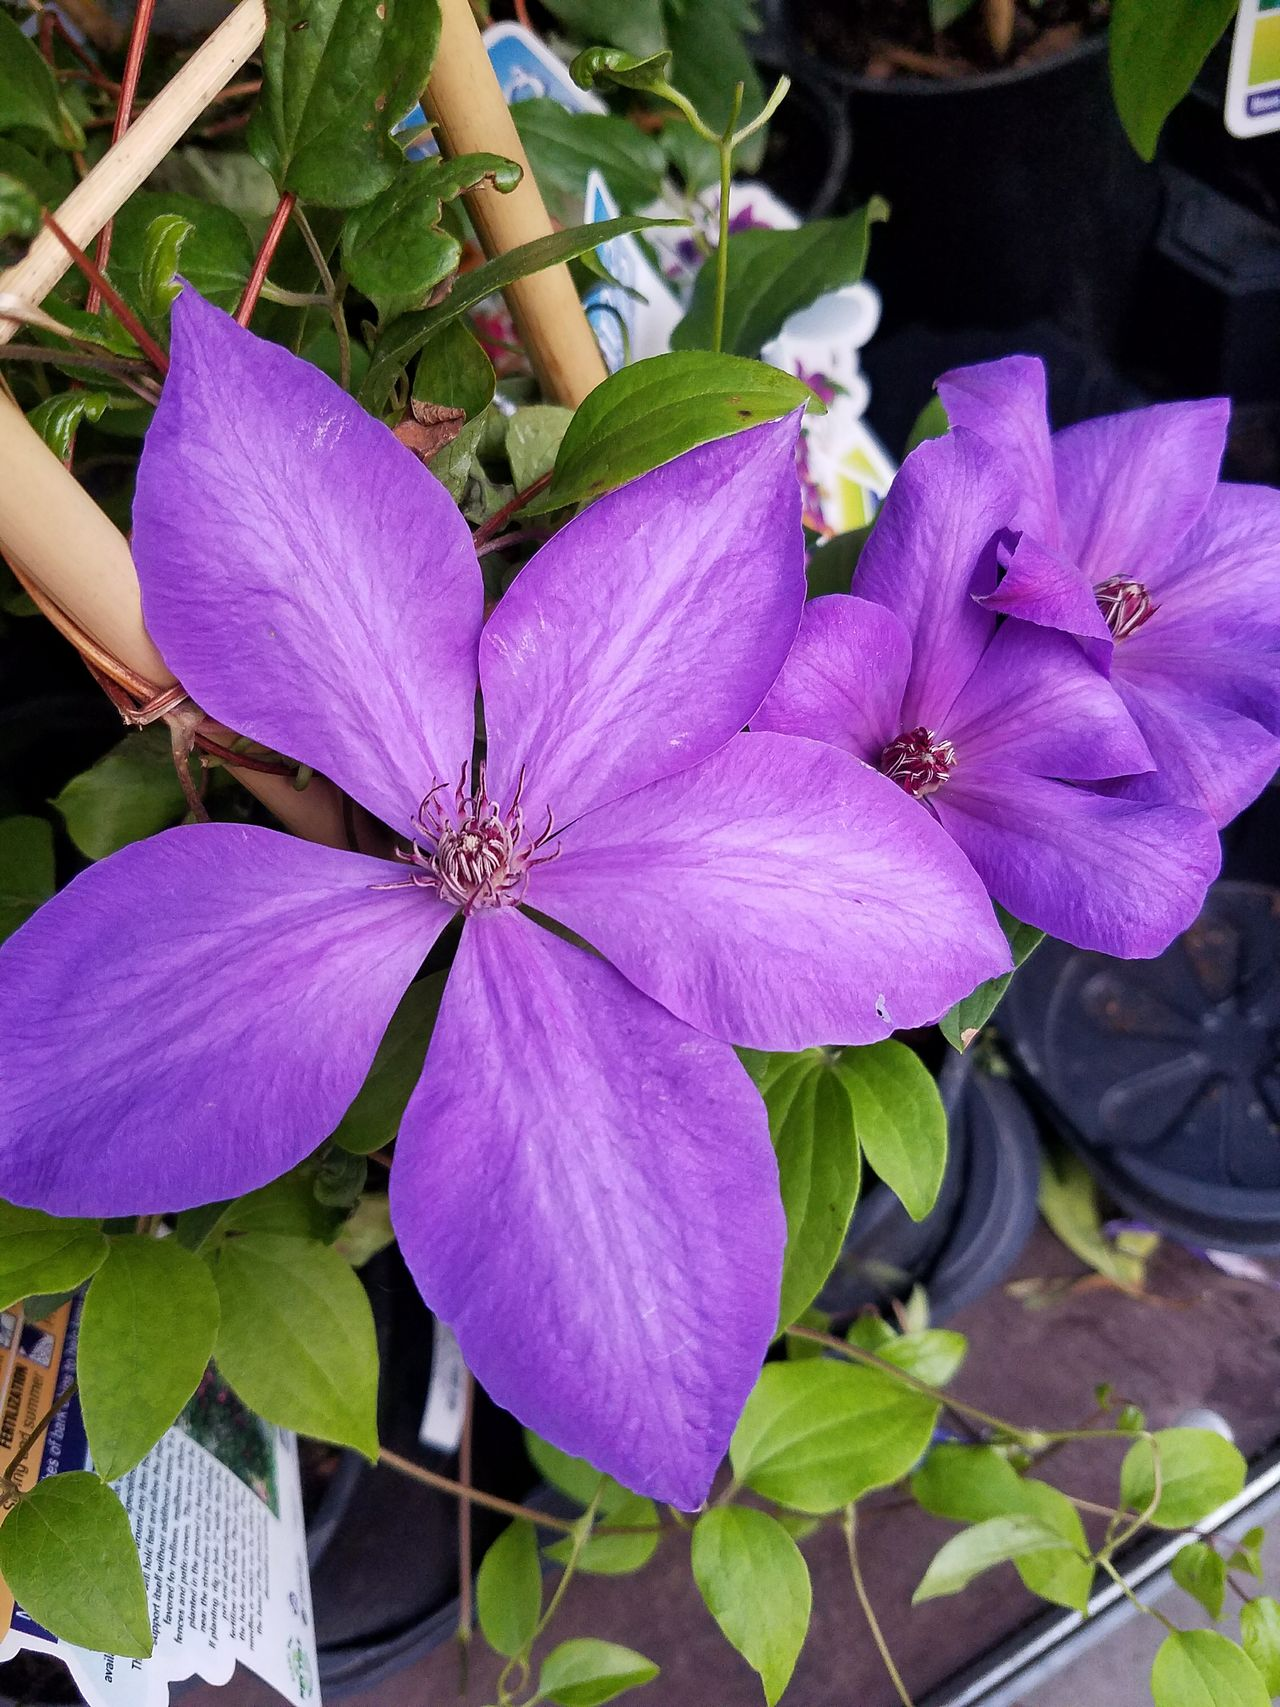 Clematis Clematis Flower Clematisphotography Flower Purple Petal Beauty In Nature Nature Fragility Outdoors Plant Flower Head Day Growth No People Close-up Freshness